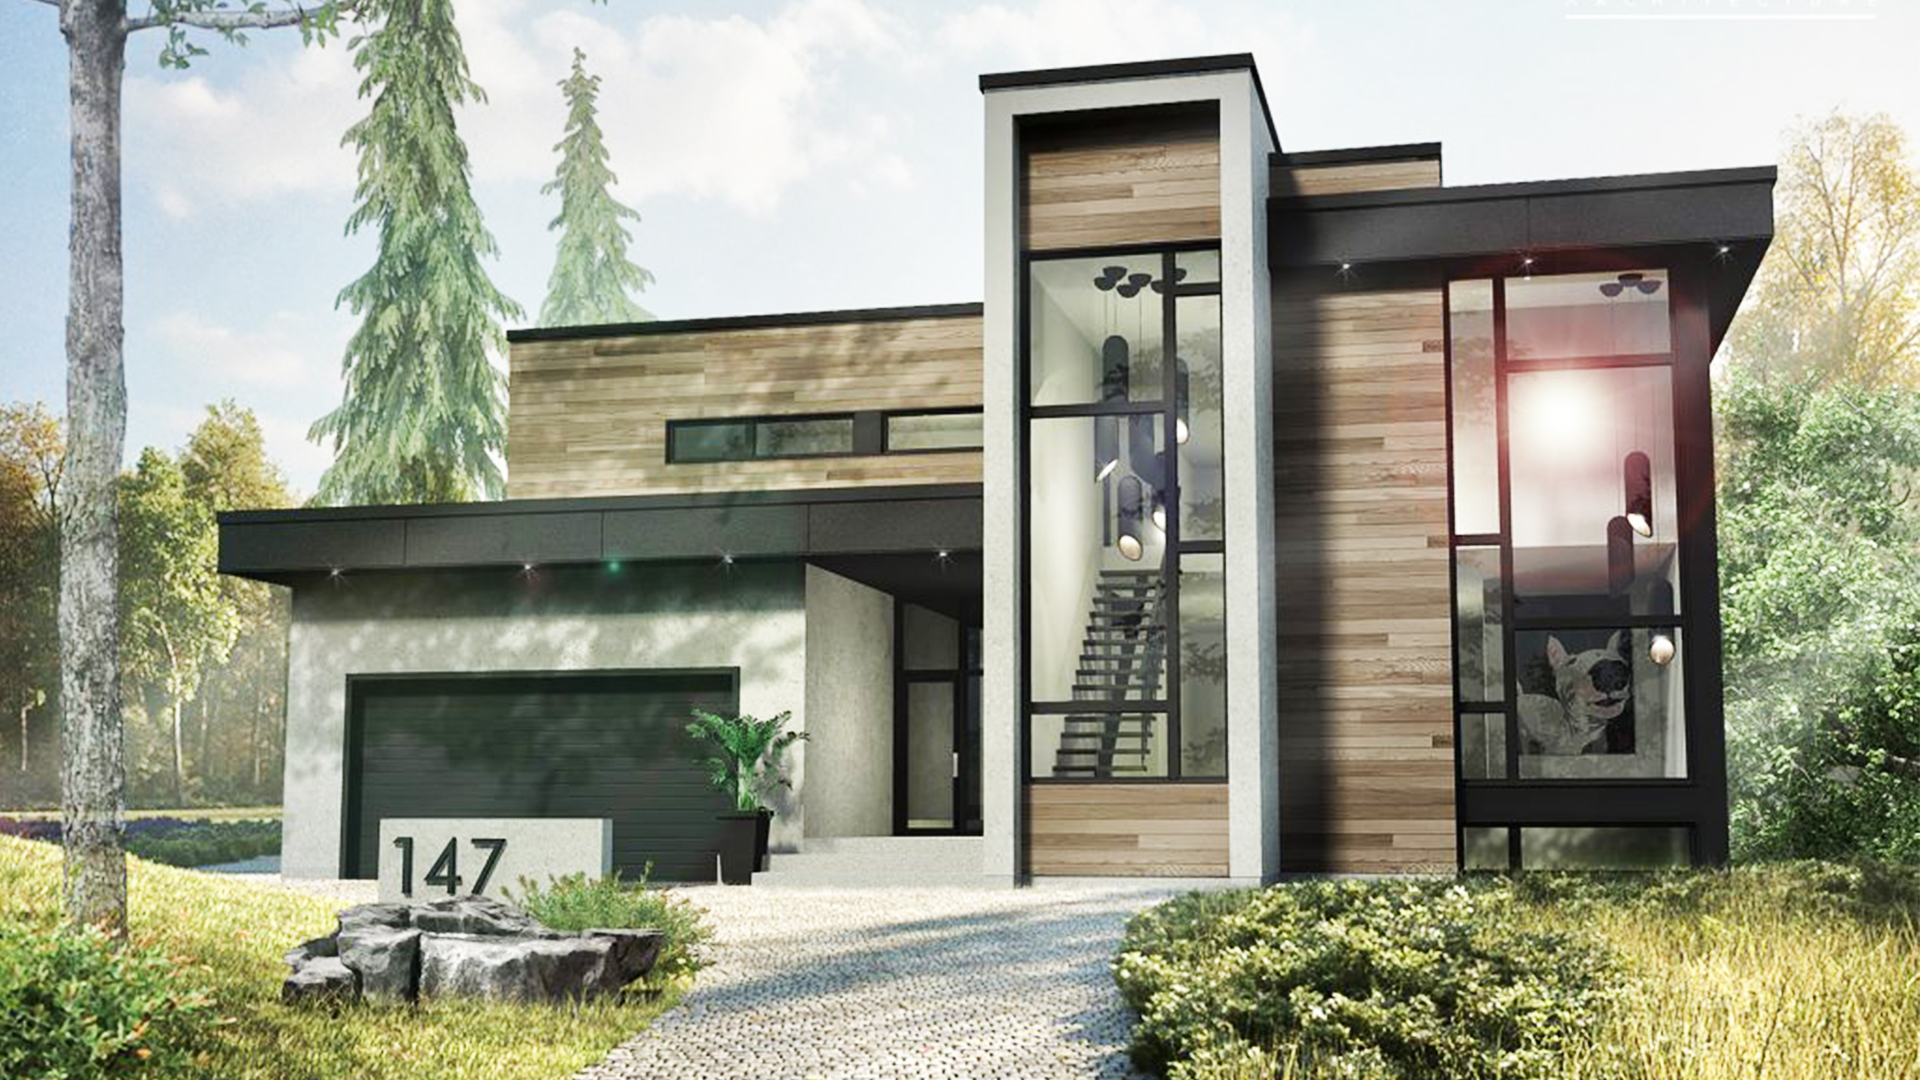 This 2 story modern house style 53x47 with basement has 4 bedrooms